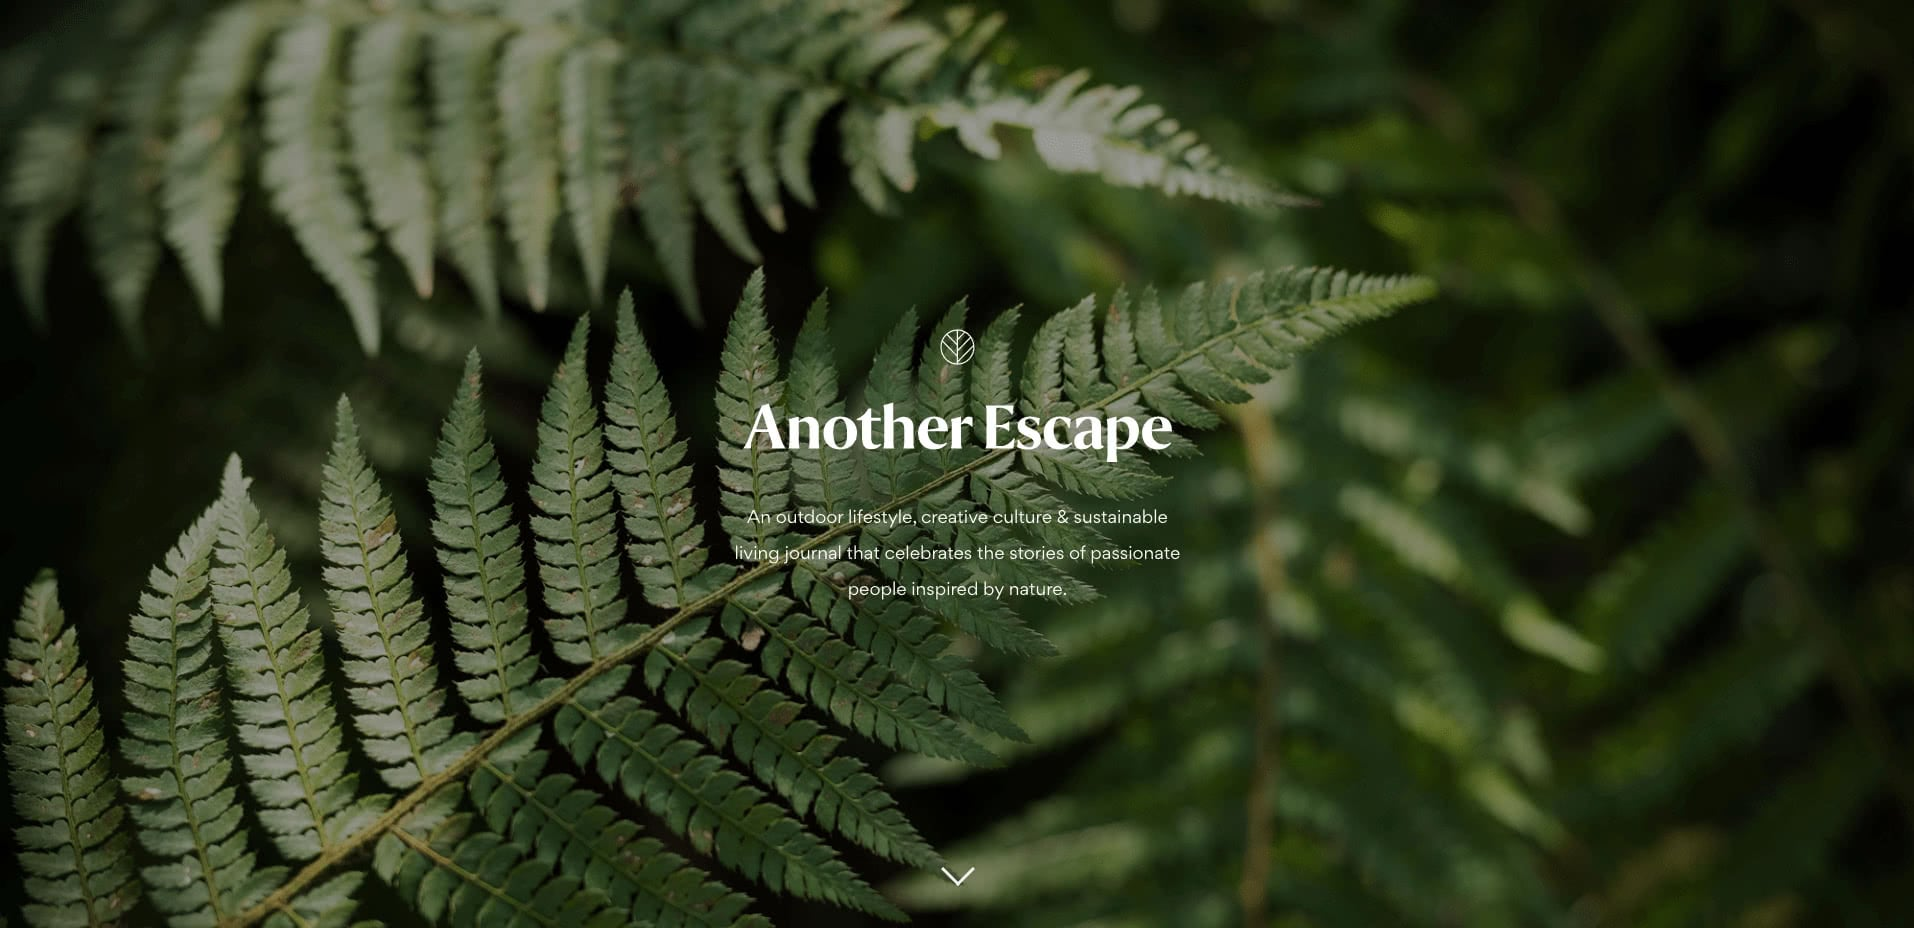 Another Escape website